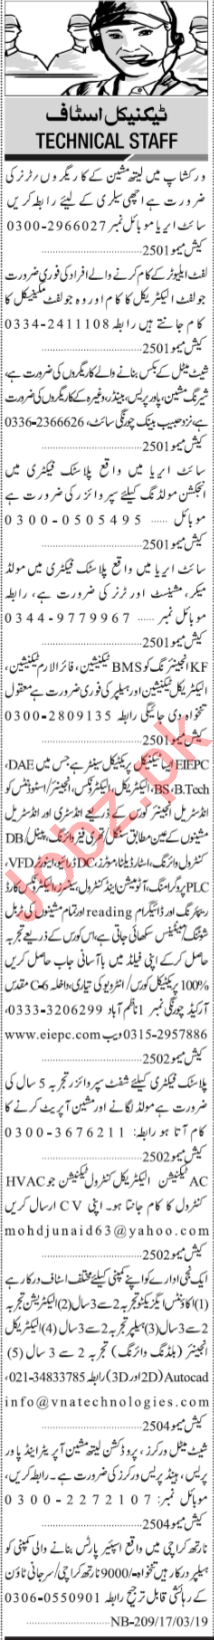 Jang Sunday Classified Ads 17th March 2019 Technical Staff